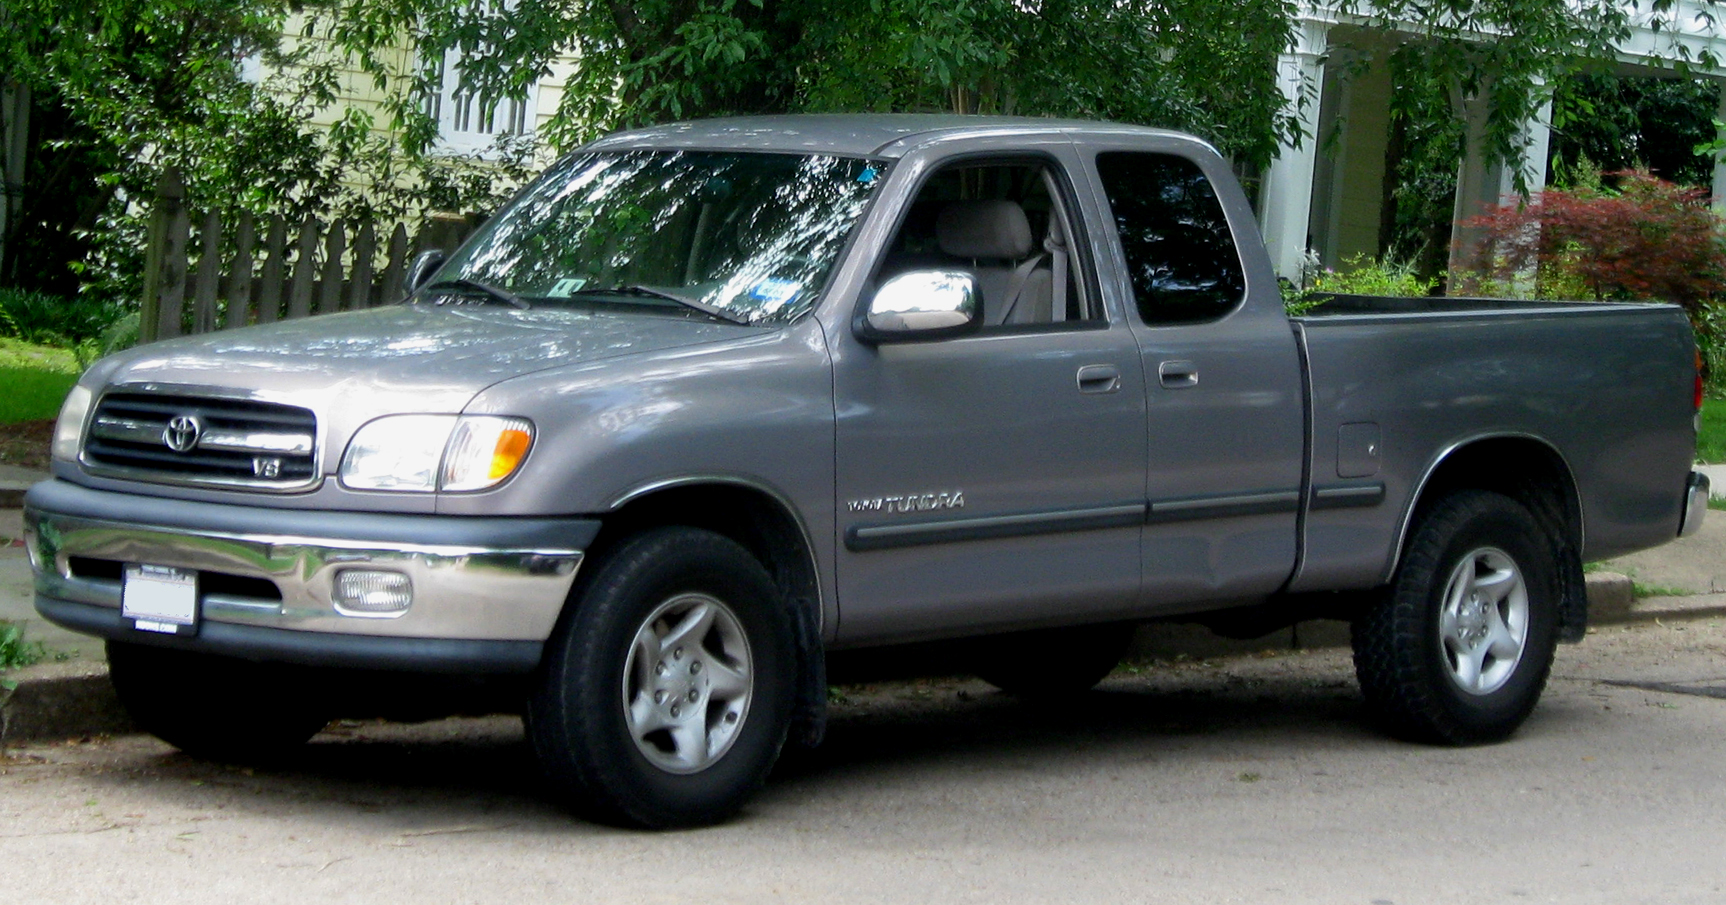 2002 toyota tundra information and photos momentcar. Black Bedroom Furniture Sets. Home Design Ideas